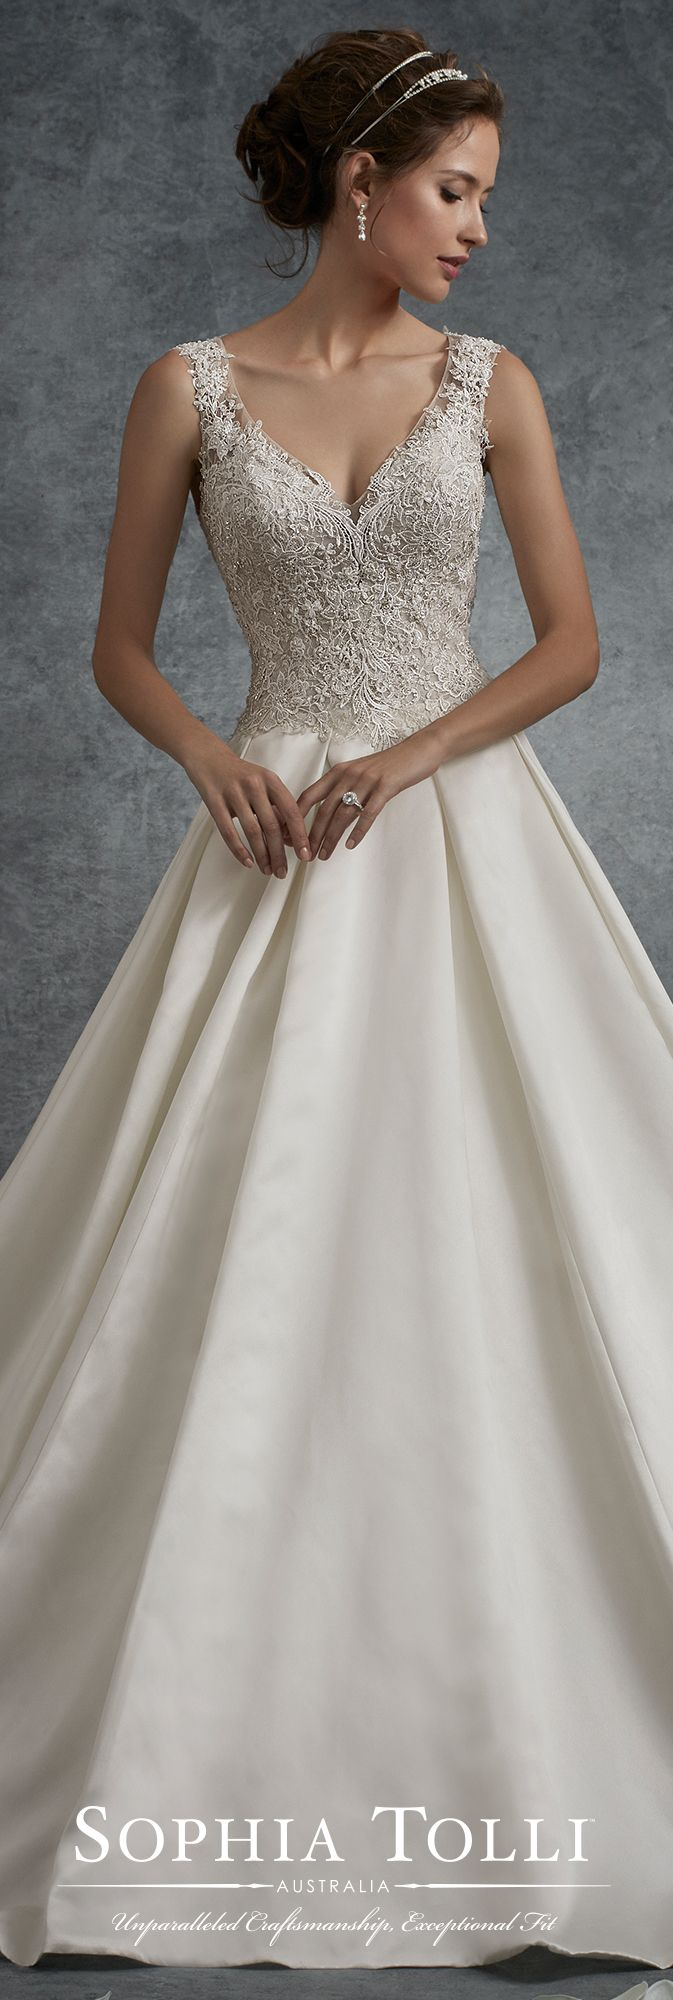 Sophia Tolli Fall 2017 Wedding Gown Collection - Style No. Y21756 Neptune - sleeveless satin A-line wedding dress with beaded lace appliqué bodice & keyhole back